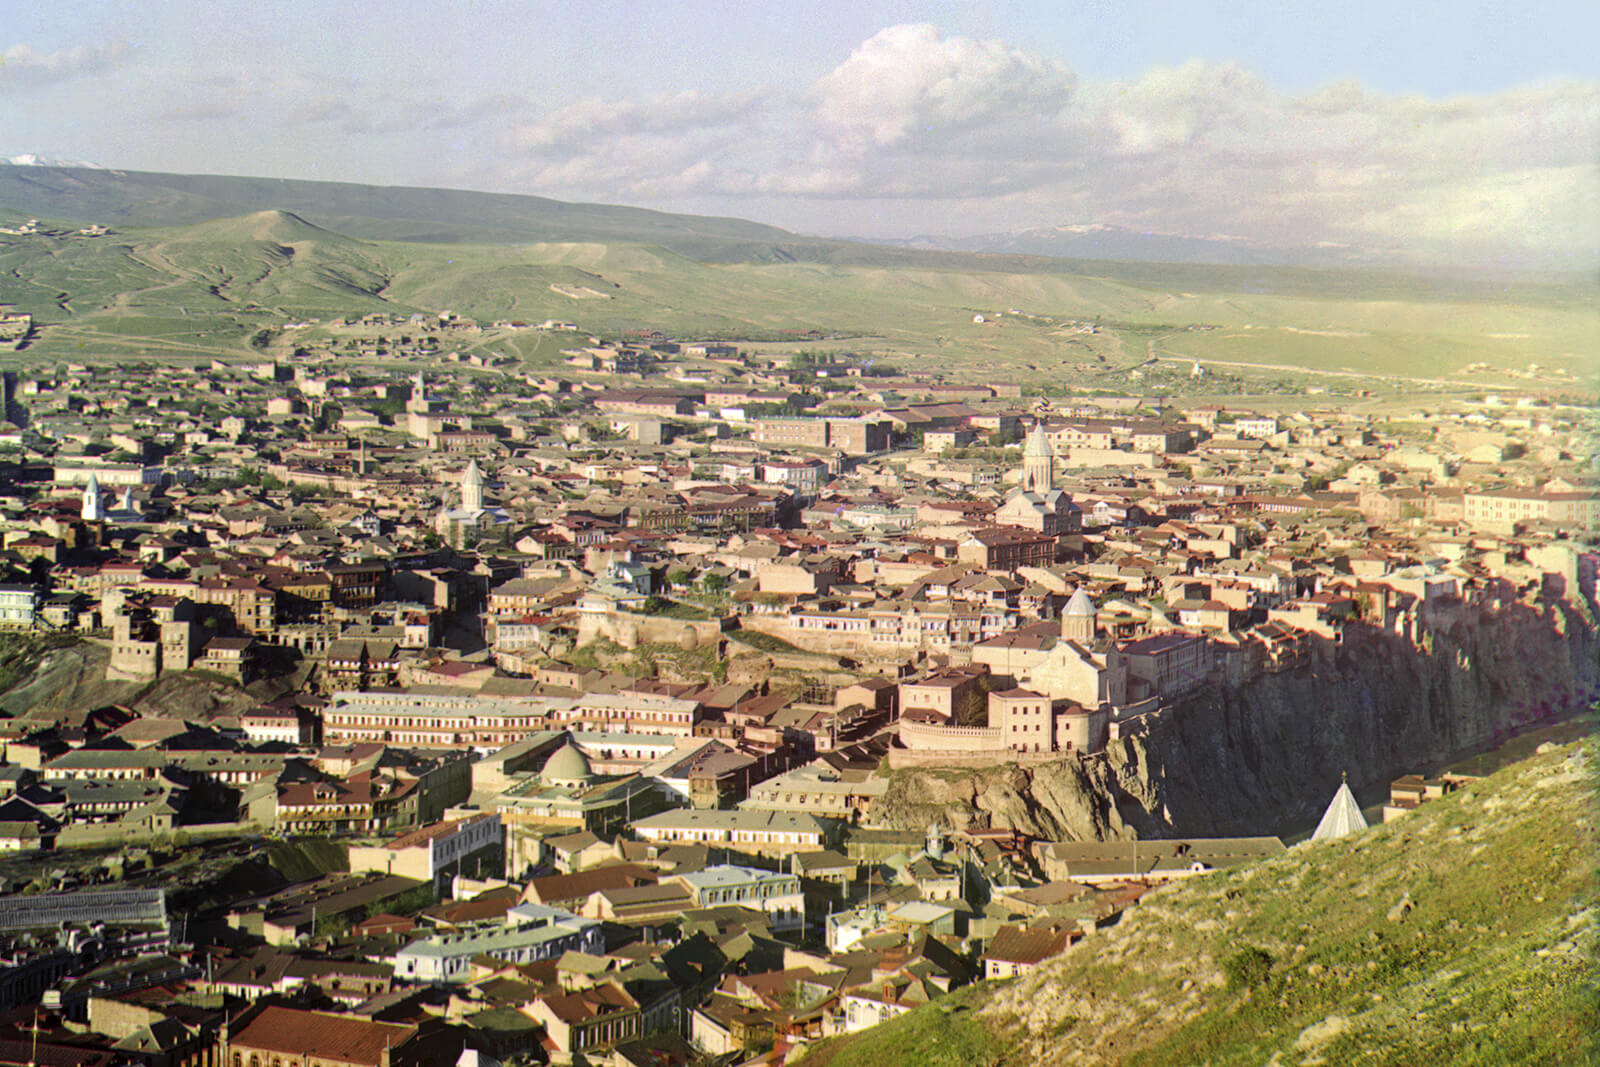 Tbilisi in the early 1900's